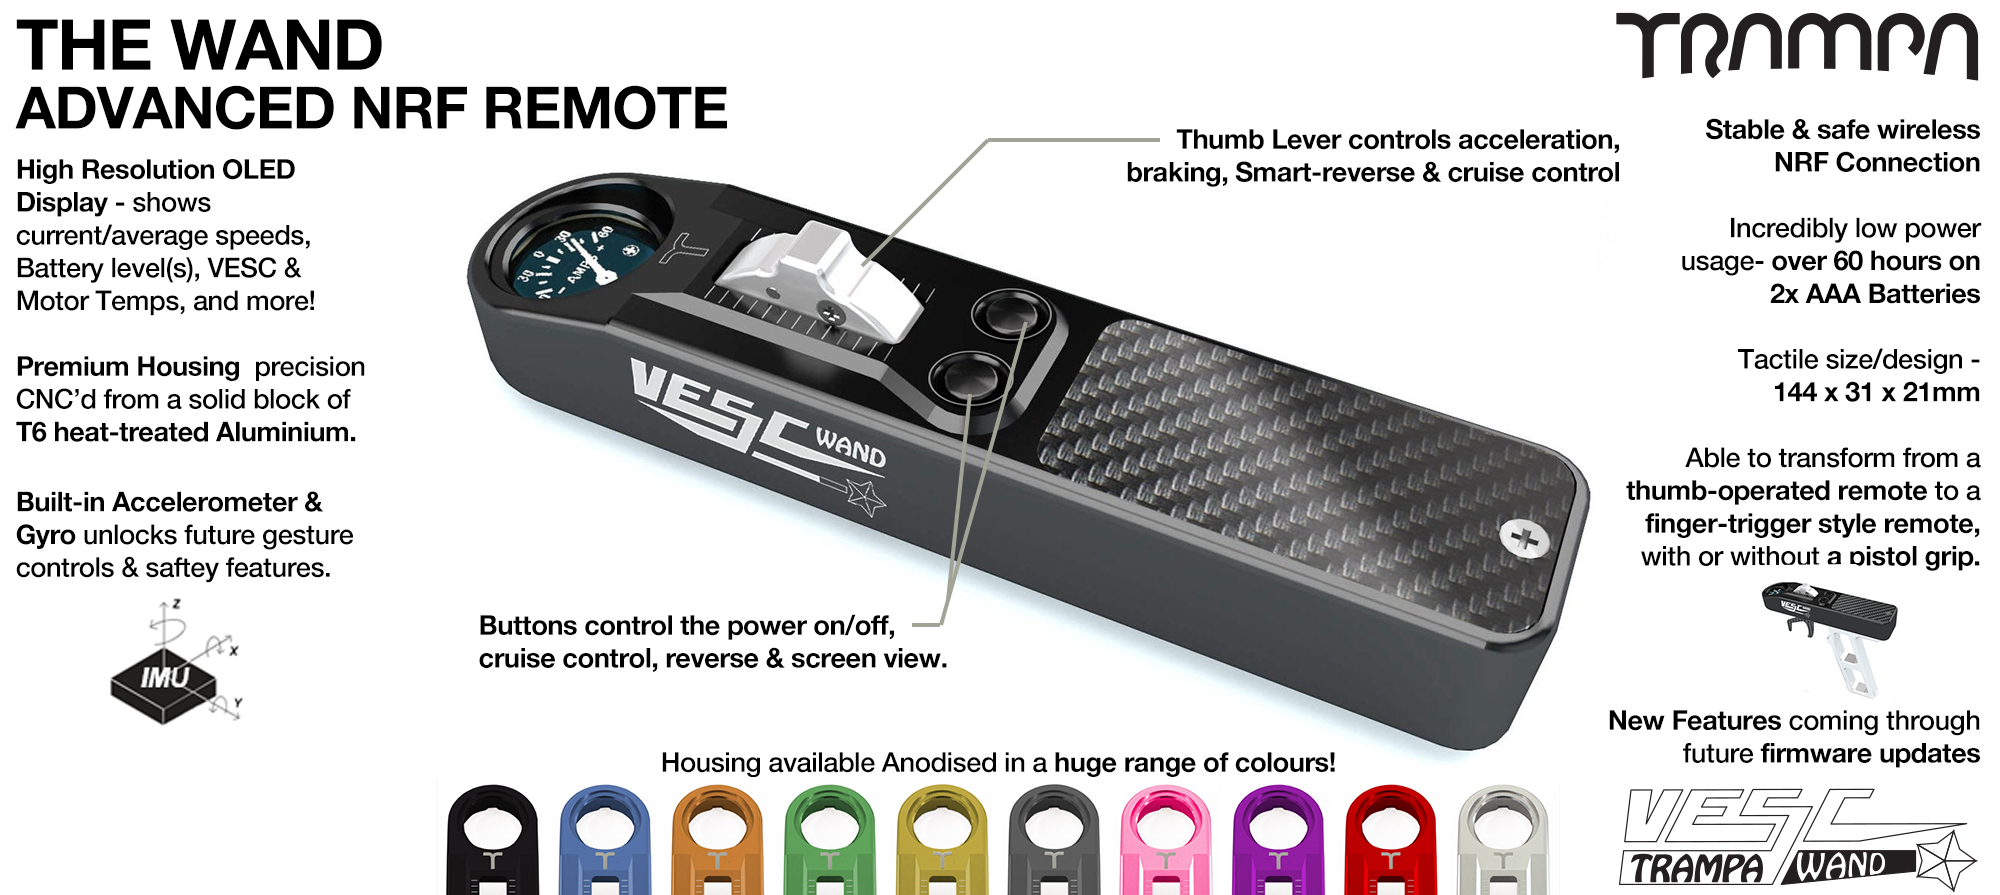 TRAMPA WAND Remote Control - VESC Based remote gives all the control you could ever wish for